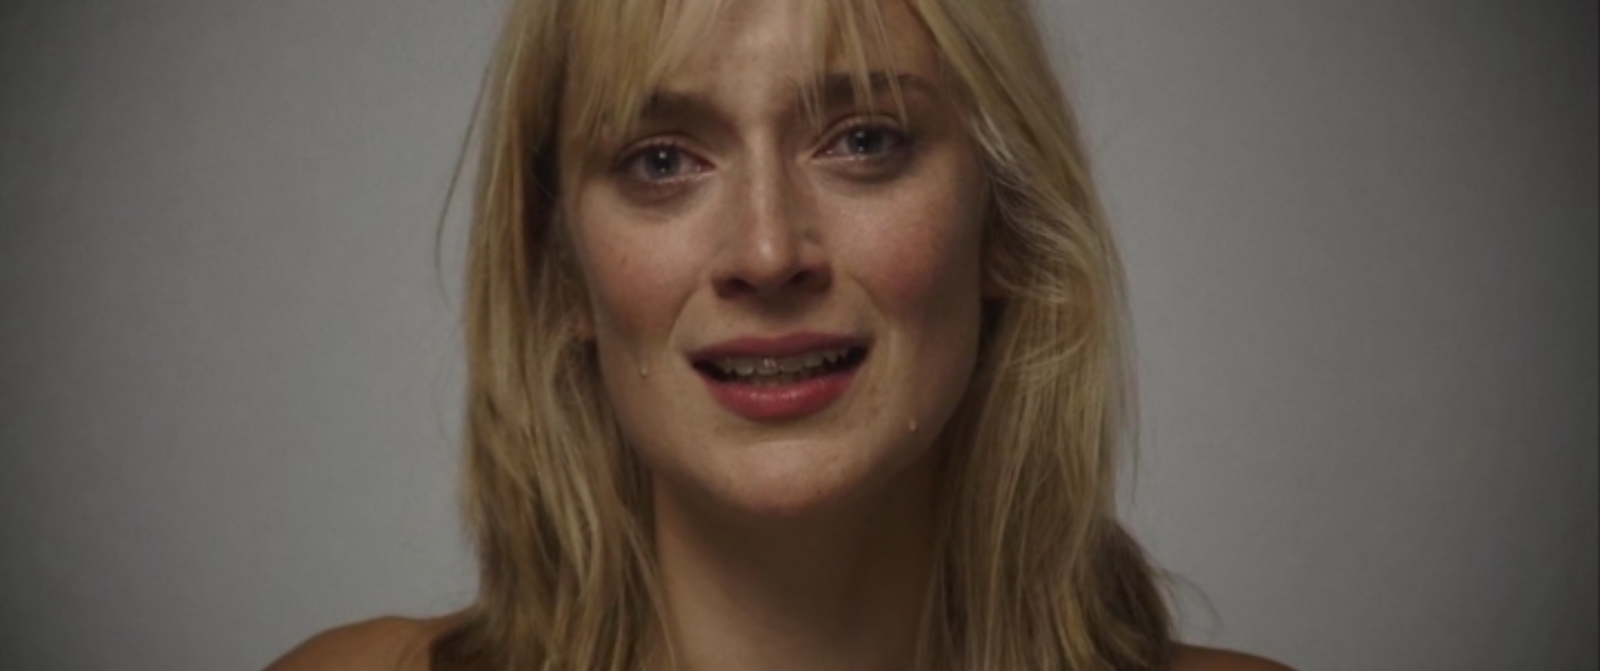 Beth (Fitzgerald) tearfully performs a horror scene to the camera.